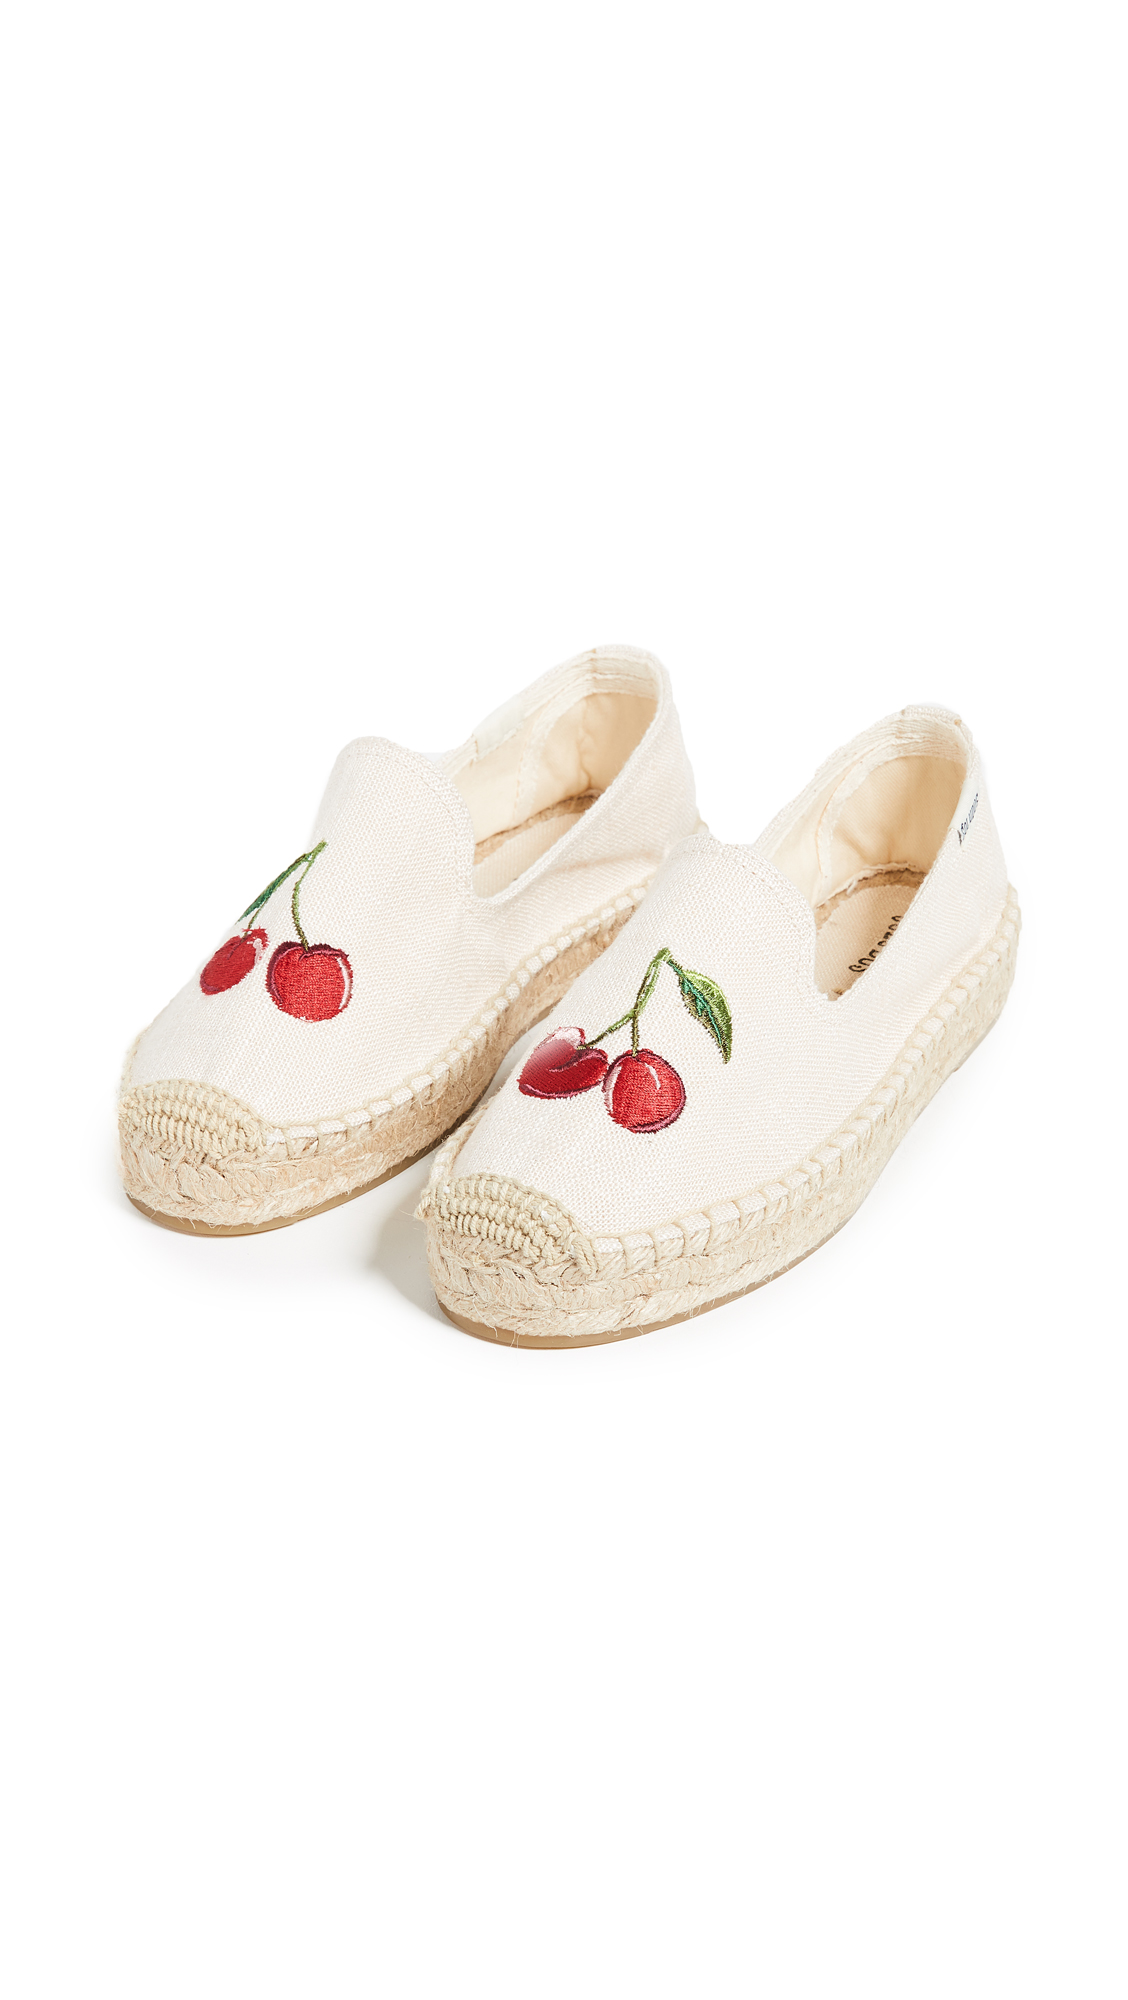 Soludos Cherries Smoking Slippers - Blush